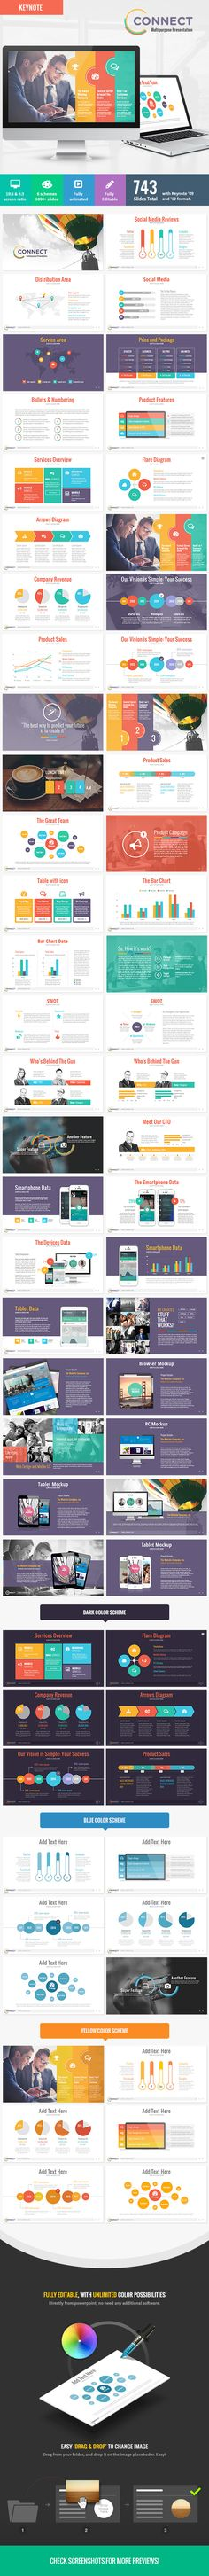 Unusual - Keynote Presentation Template Presentation templates - keynote template